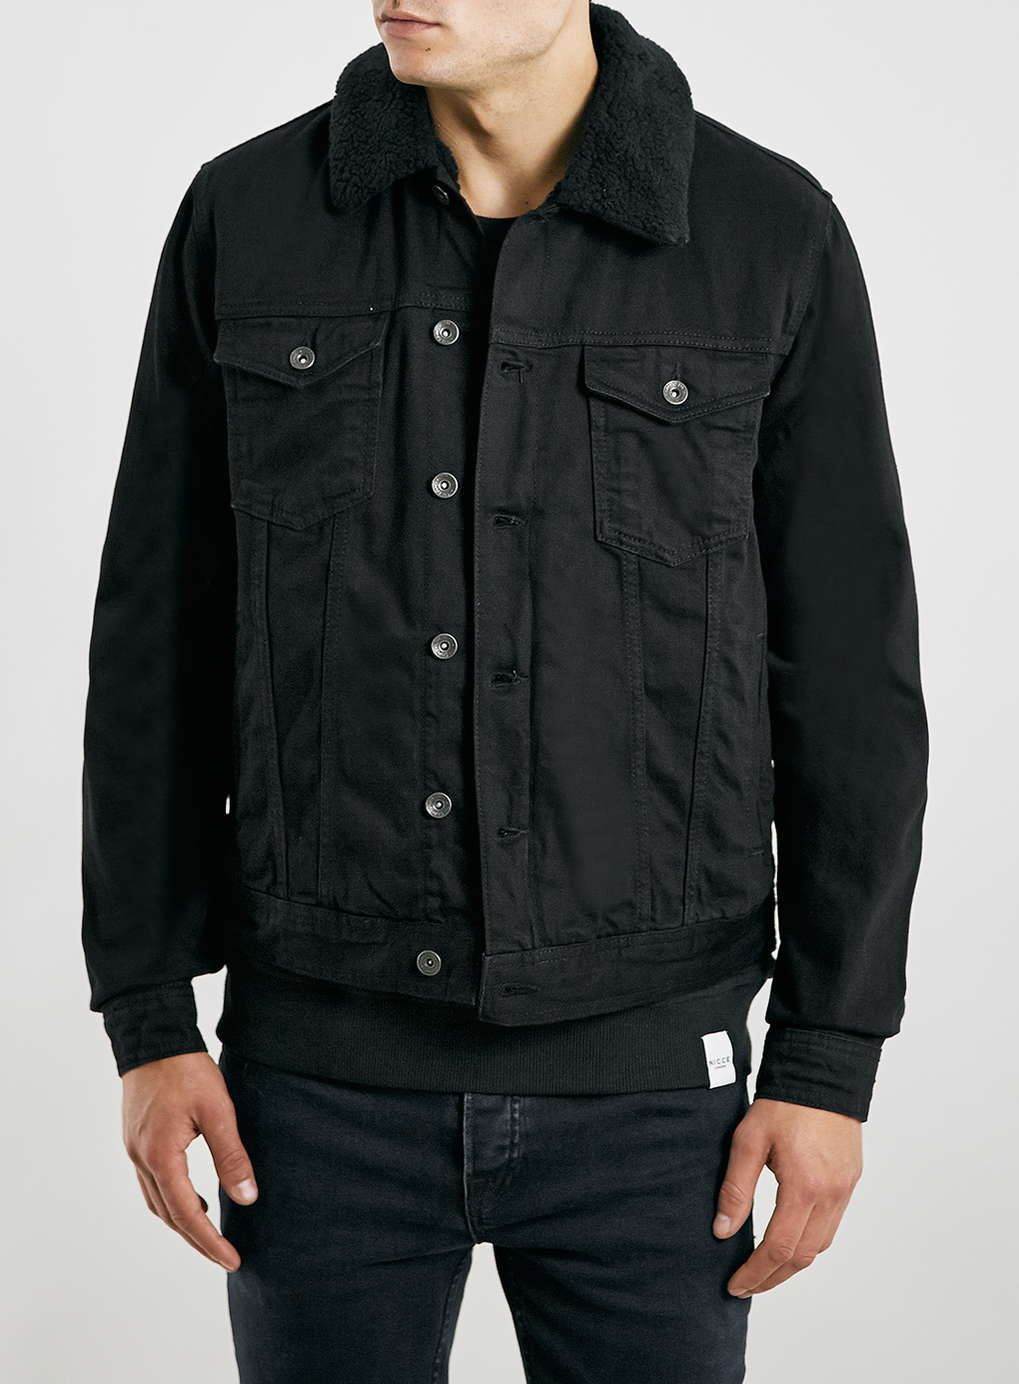 Black Borg Lined Denim Jacket - New In - New In | goods ...